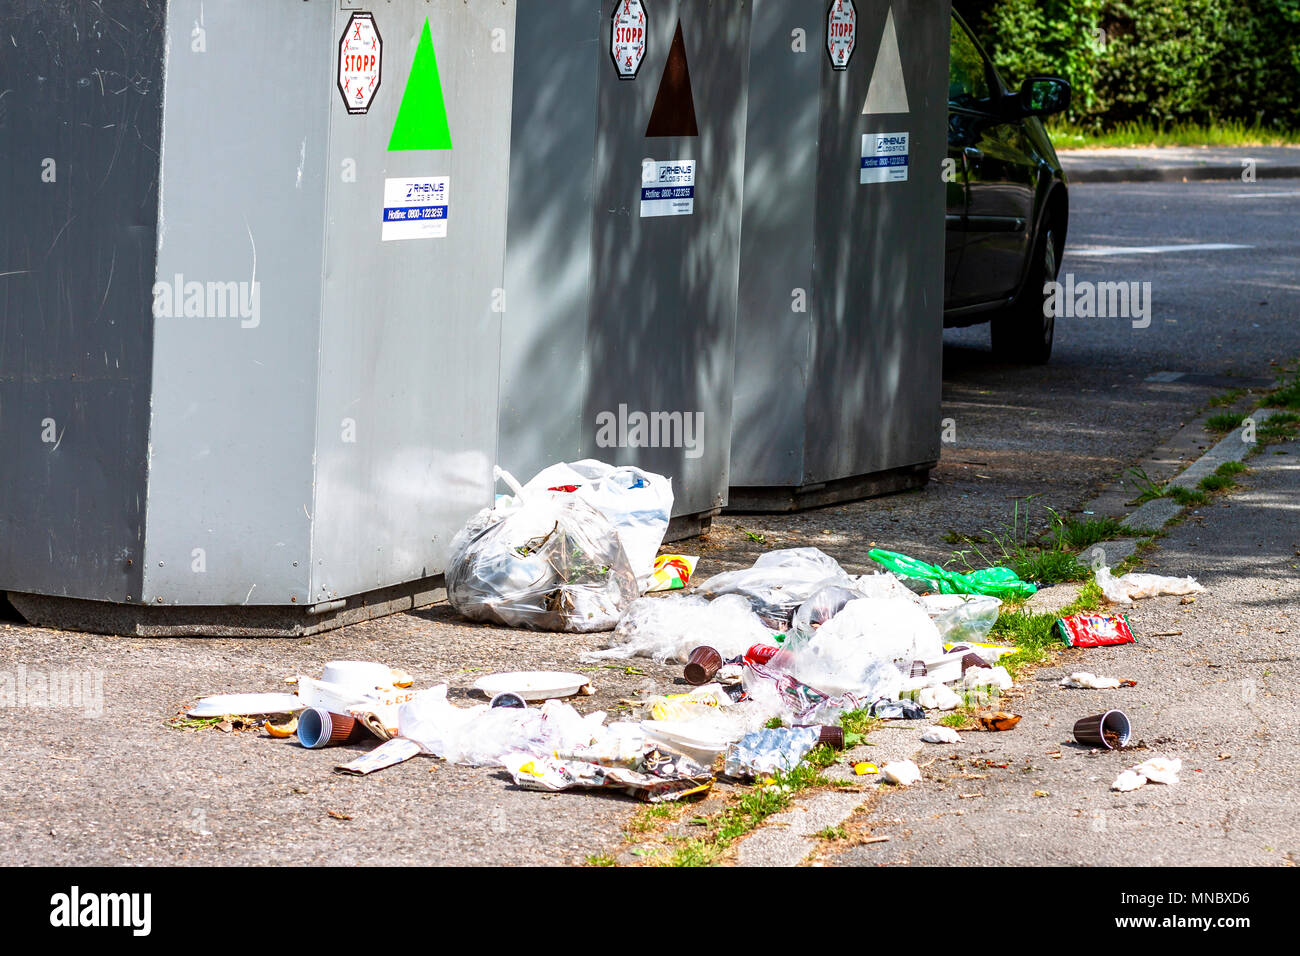 ESSEN / GERMANY - MAY 12 2018 : Rubbish is lying next to the bin - Stock Image